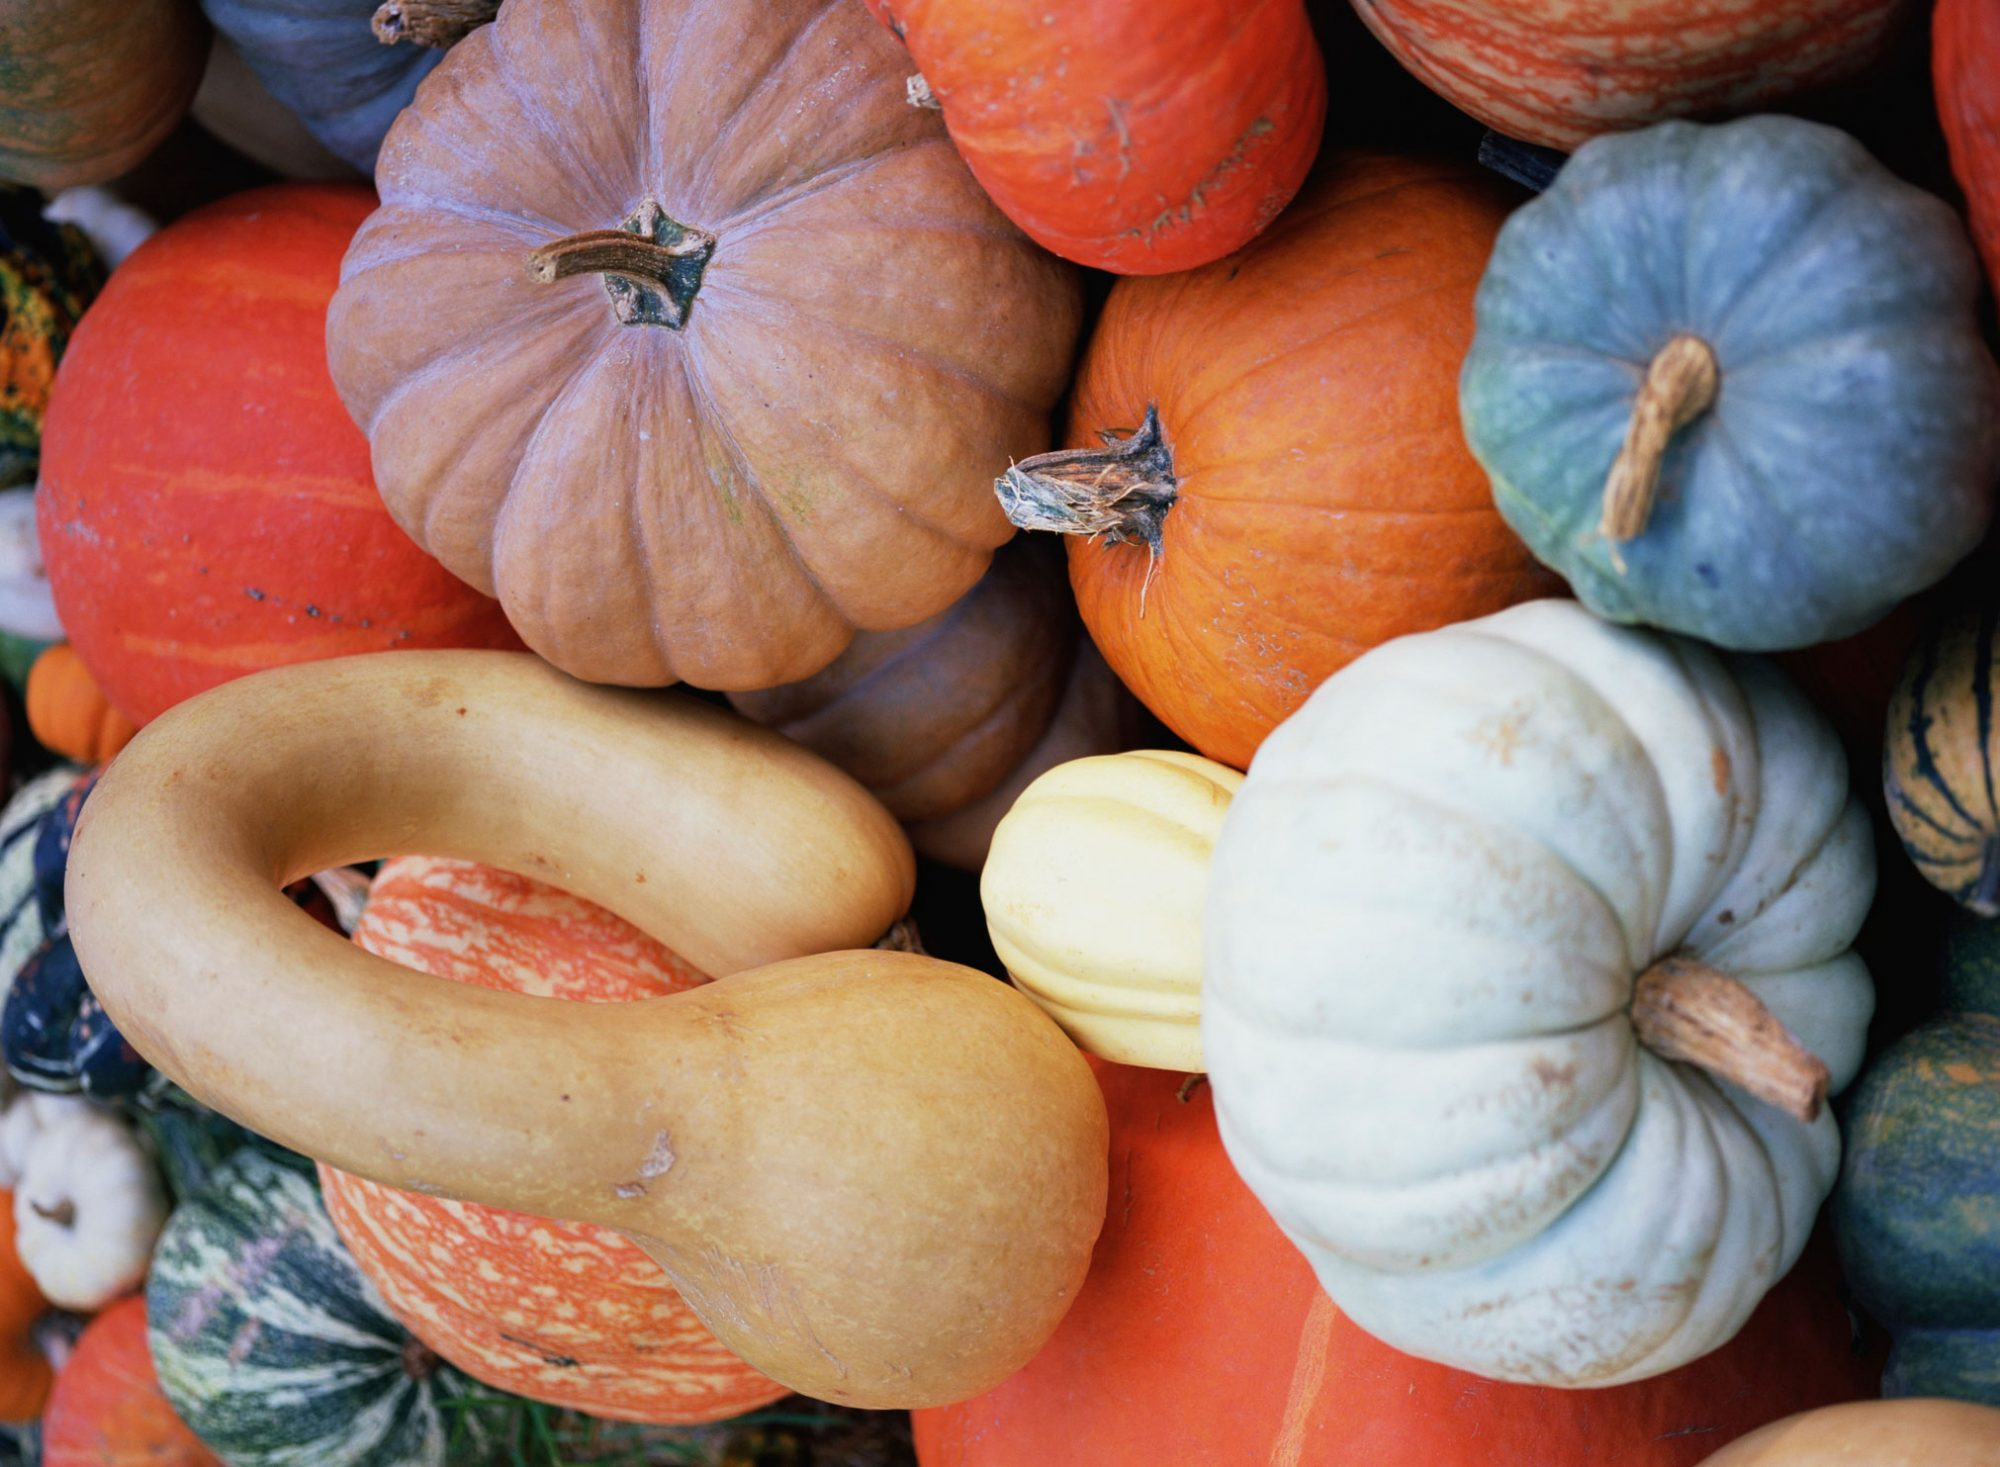 Pile of Pumpkins and Gourds